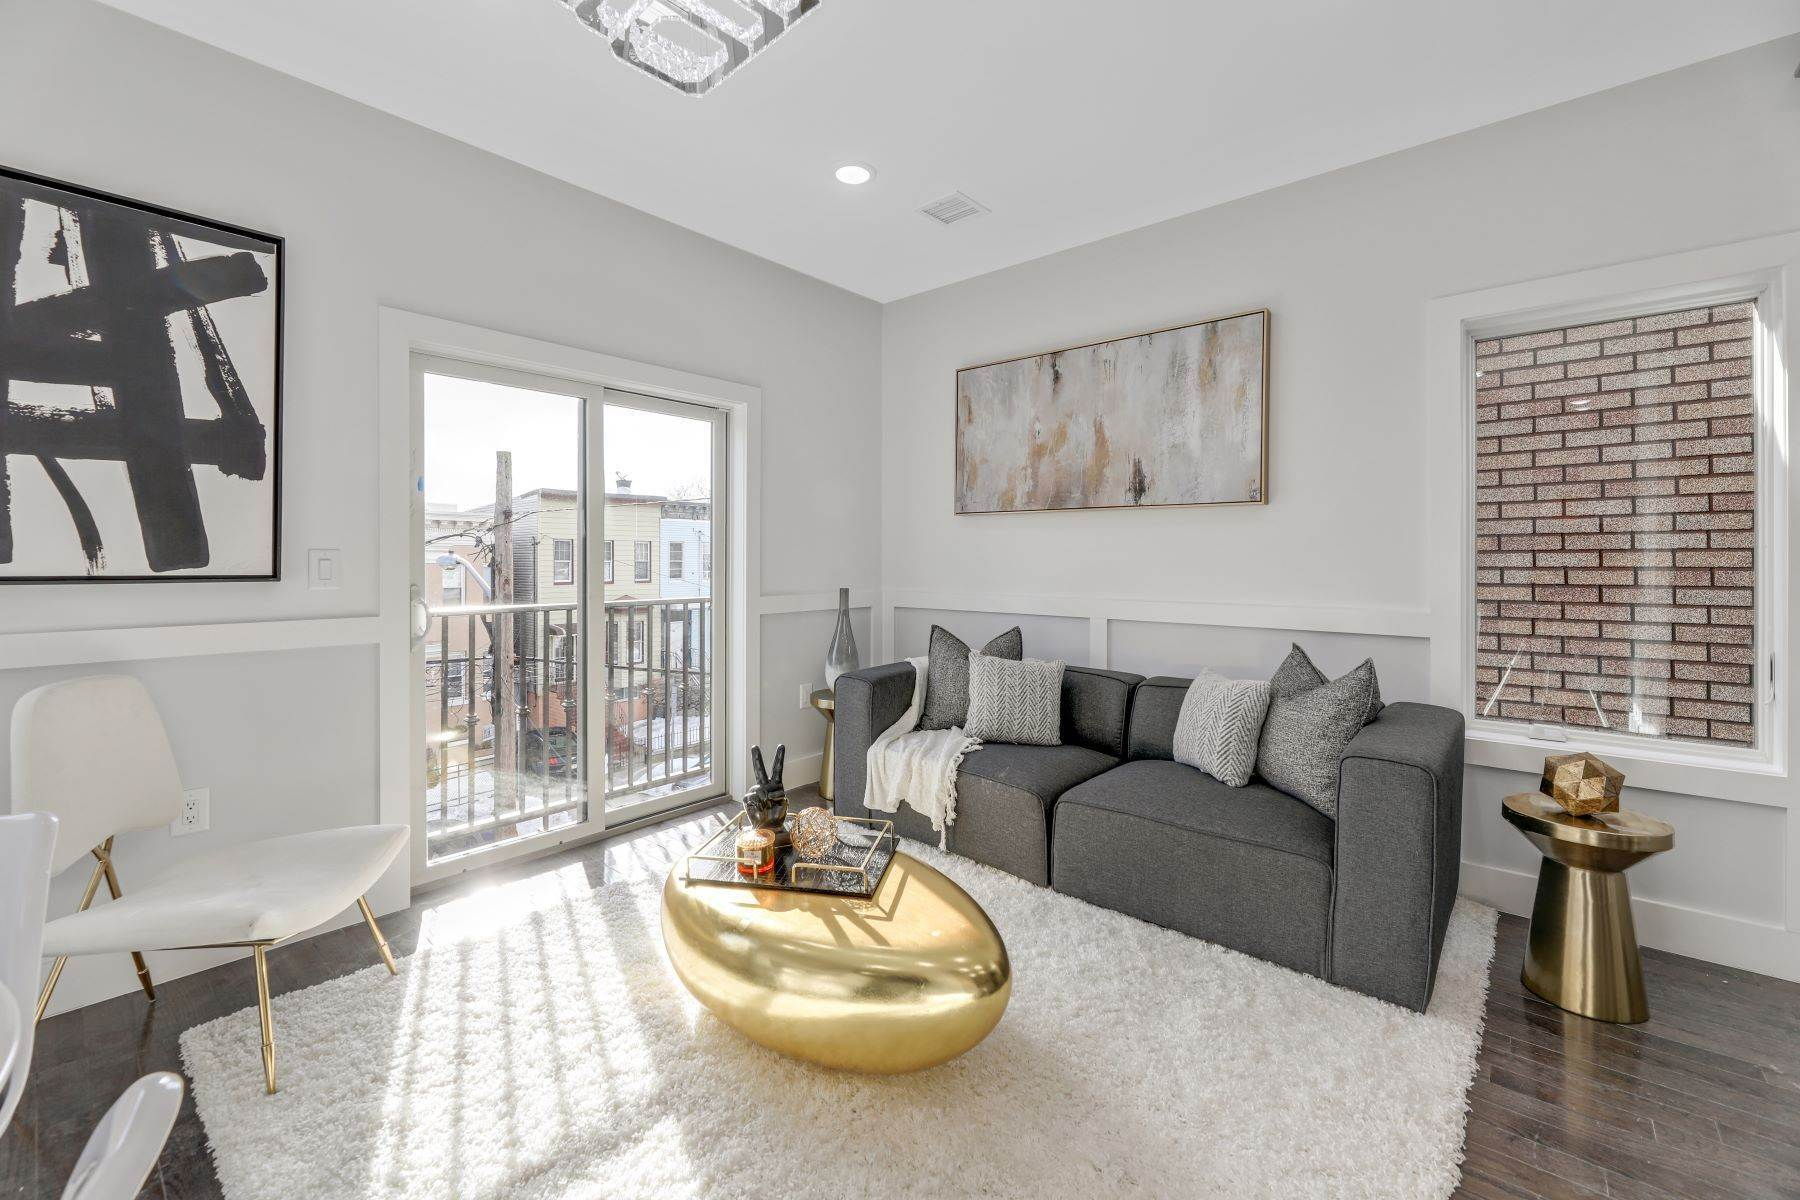 Condominiums for Sale at Welcome home to this brand new constructed 3 bed/ 2.5 bath. 66 Poplar Street, Unit 4 Jersey City, New Jersey 07307 United States